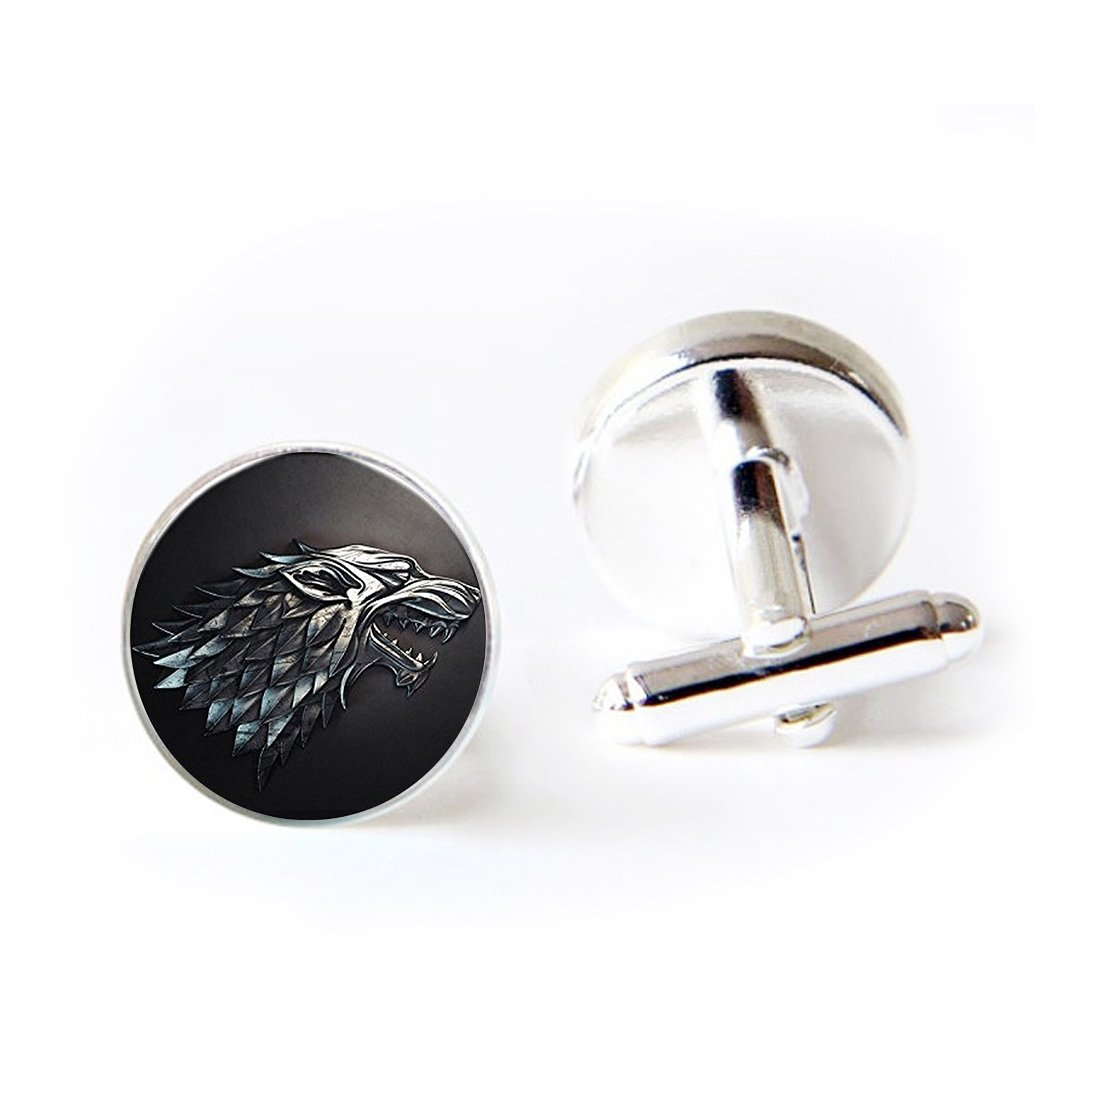 LooPoP Round Cufflink Set Game Of Thrones Inspired House Stark Of Winterfell Cufflinks For Men's Accessories Shirts Business Wedding